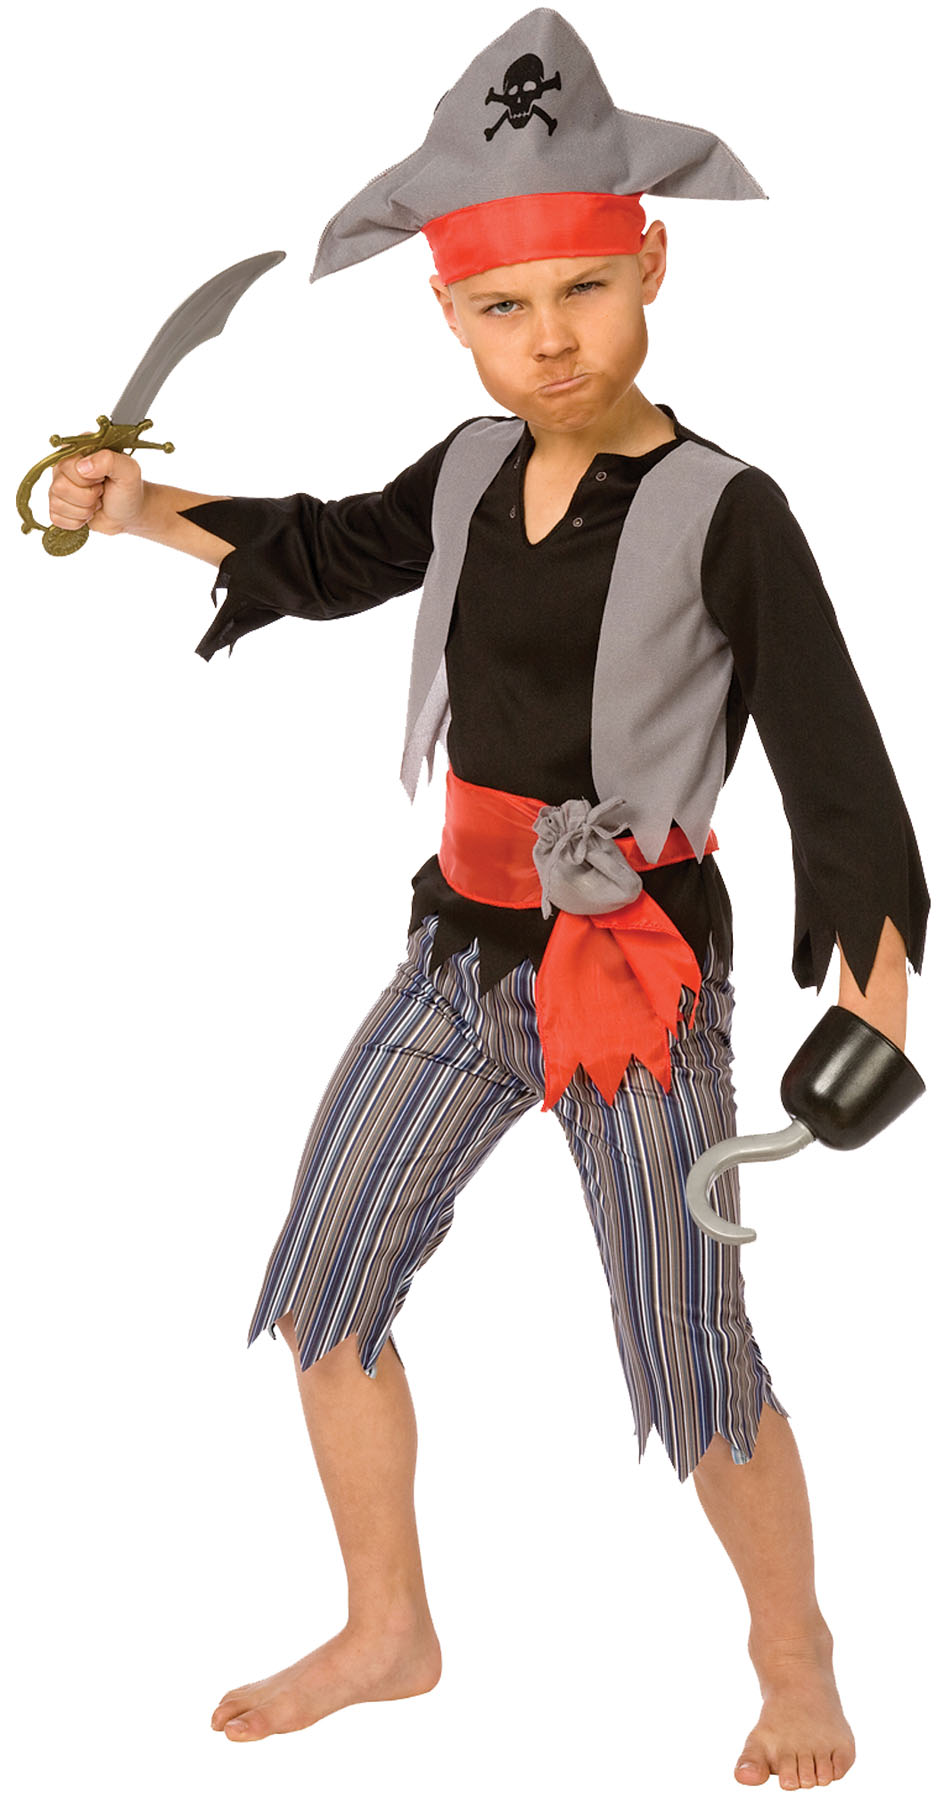 Living Fiction Ragged Swashbuckler Pirate Captain 4pc Boy Costume, Grey Red by Palamon